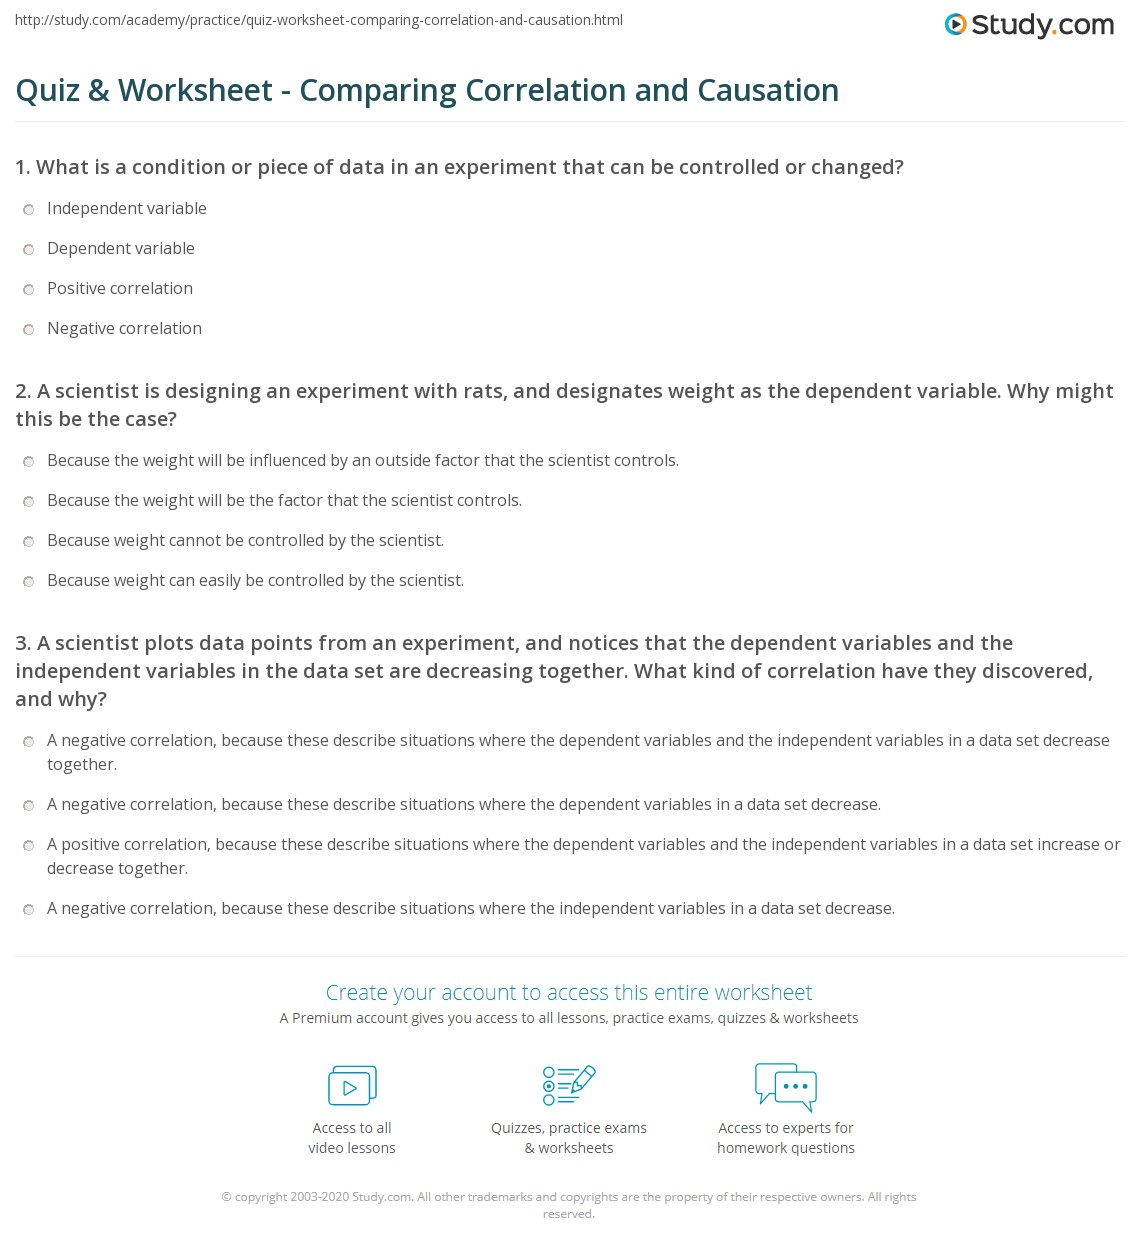 Aldiablosus  Nice Quiz Amp Worksheet  Comparing Correlation And Causation  Studycom With Outstanding Print Correlation Vs Causation Differences Amp Definition Worksheet With Endearing Comprehension Worksheets For Grade  Free Also Tudor Timeline Worksheet In Addition Speed Worksheet Answers And Mythology Worksheets For High School As Well As Year  Algebra Worksheets Additionally Percentage Problems Worksheet From Studycom With Aldiablosus  Outstanding Quiz Amp Worksheet  Comparing Correlation And Causation  Studycom With Endearing Print Correlation Vs Causation Differences Amp Definition Worksheet And Nice Comprehension Worksheets For Grade  Free Also Tudor Timeline Worksheet In Addition Speed Worksheet Answers From Studycom